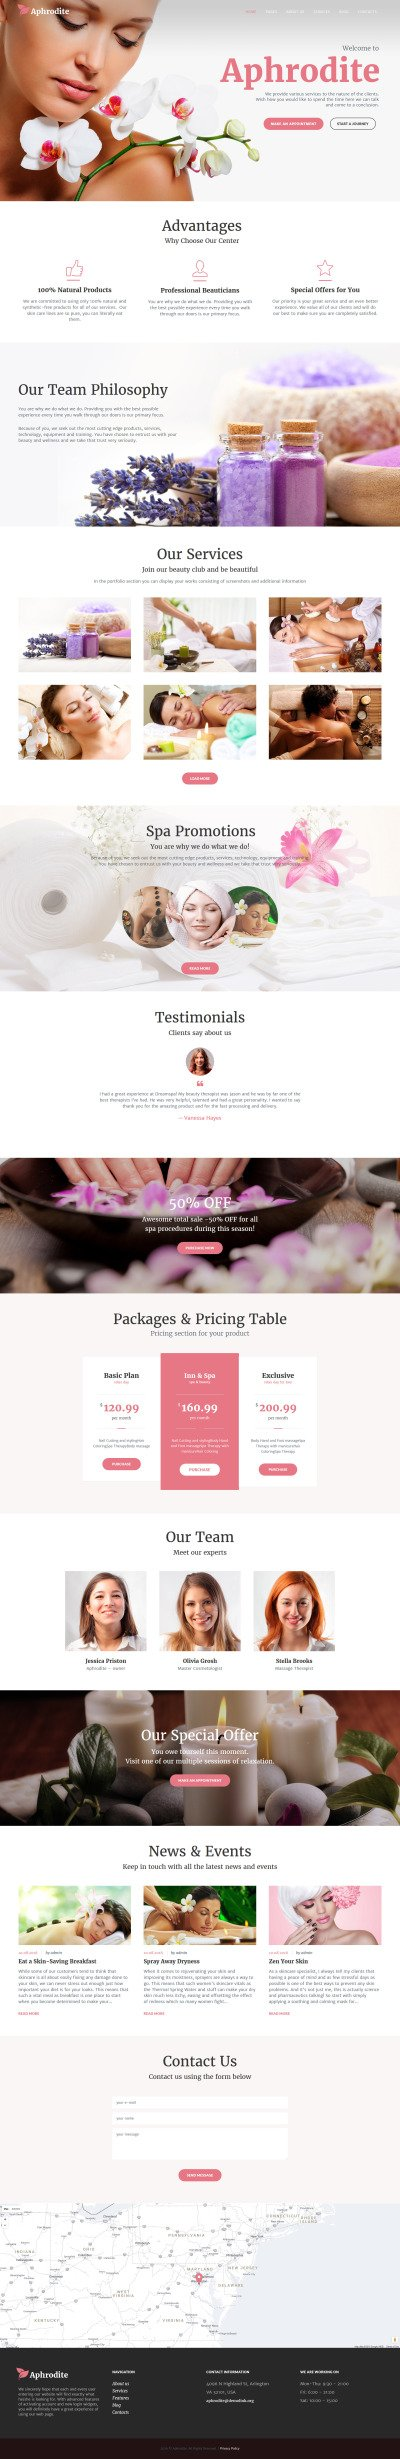 Aphrodite - Beauty & SPA Salon Responsive